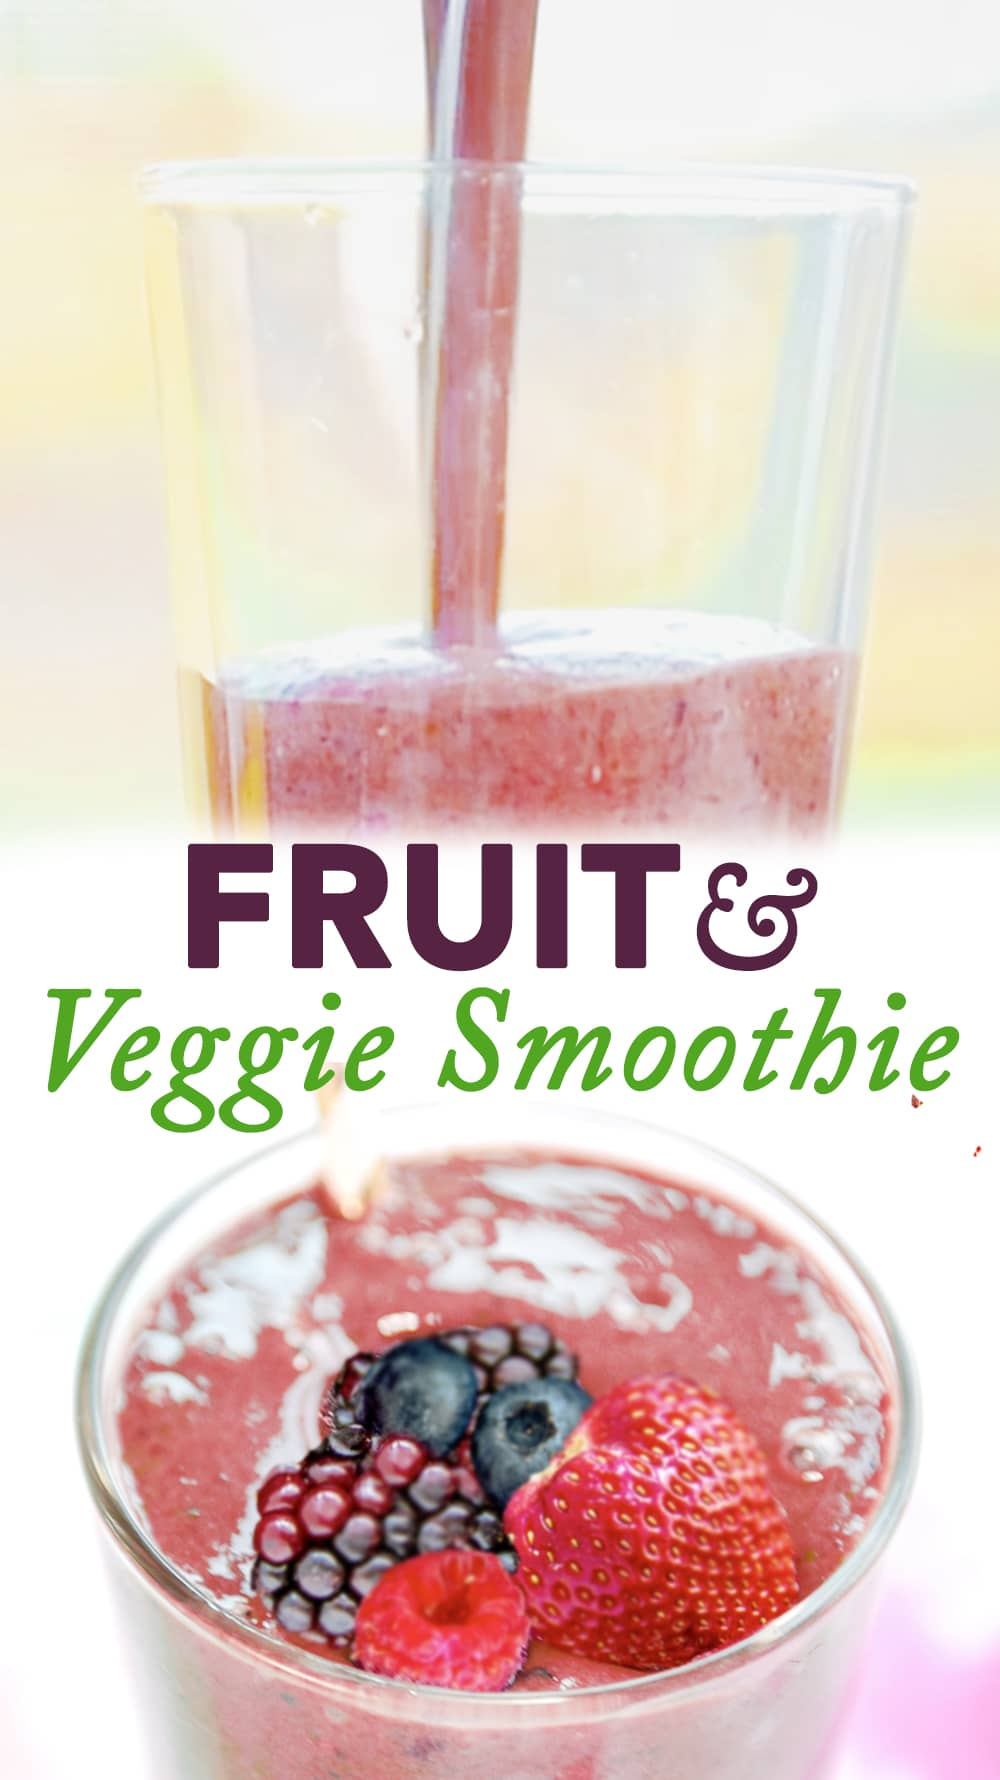 This Fruit and Veggie Smoothie has a full 7 1/2 servings of fresh fruits and vegetables. We like to make this in the morning for energy! #fresh #smoothie #fruitandveggiesmoothie #fruit #veggie #spinach #berries #banana #yogurt #kefir #chiaseeds #fruitandvegetablesmoothie #vegetable #veggies #greensmoothie #berrygreensmoothie